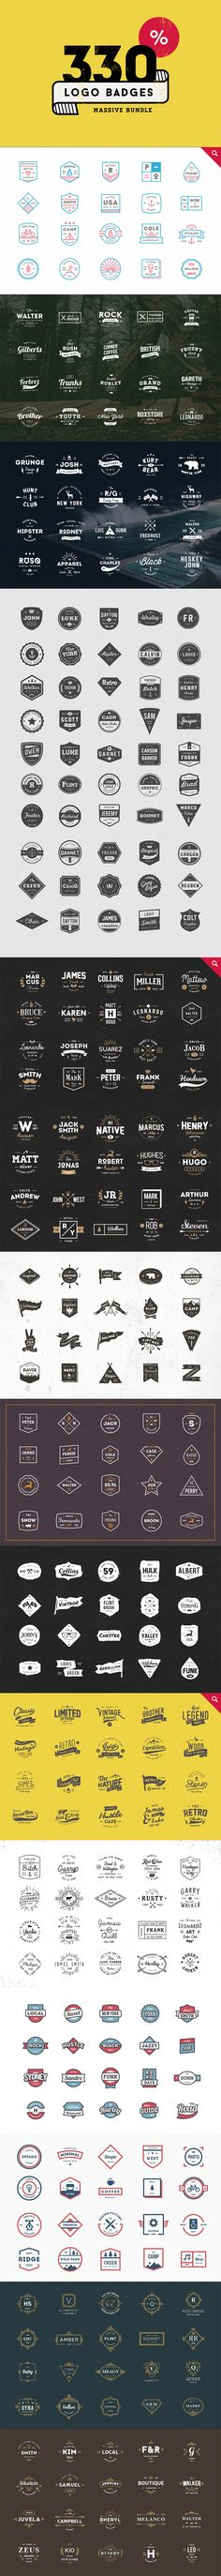 https://creativemarket.com/vuuuds/206973-330-Logos-Bundle